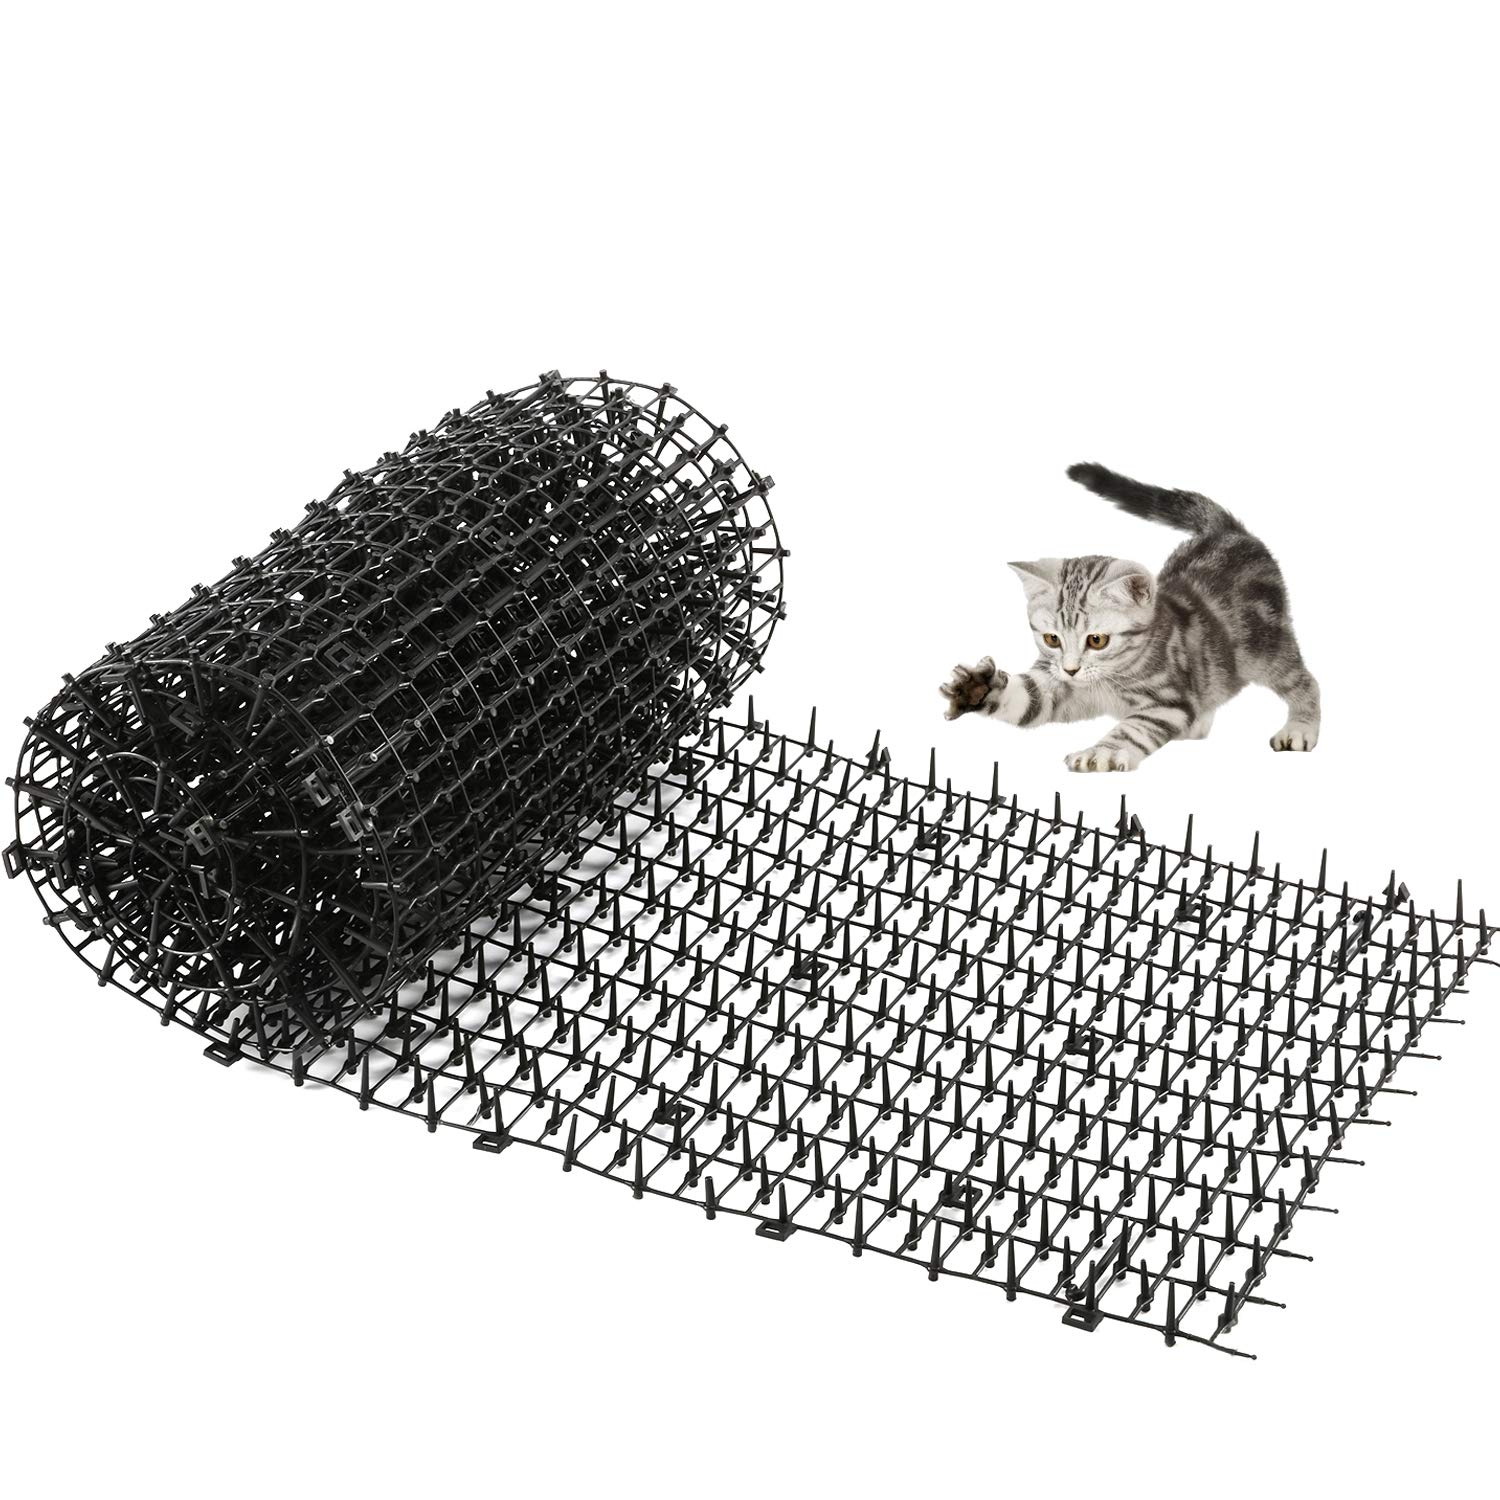 One Sight Scat Mat with Spikes for Cats Dog Digging Deterrent Outdoor Mats for Garden and Fence Cats Stopper Network